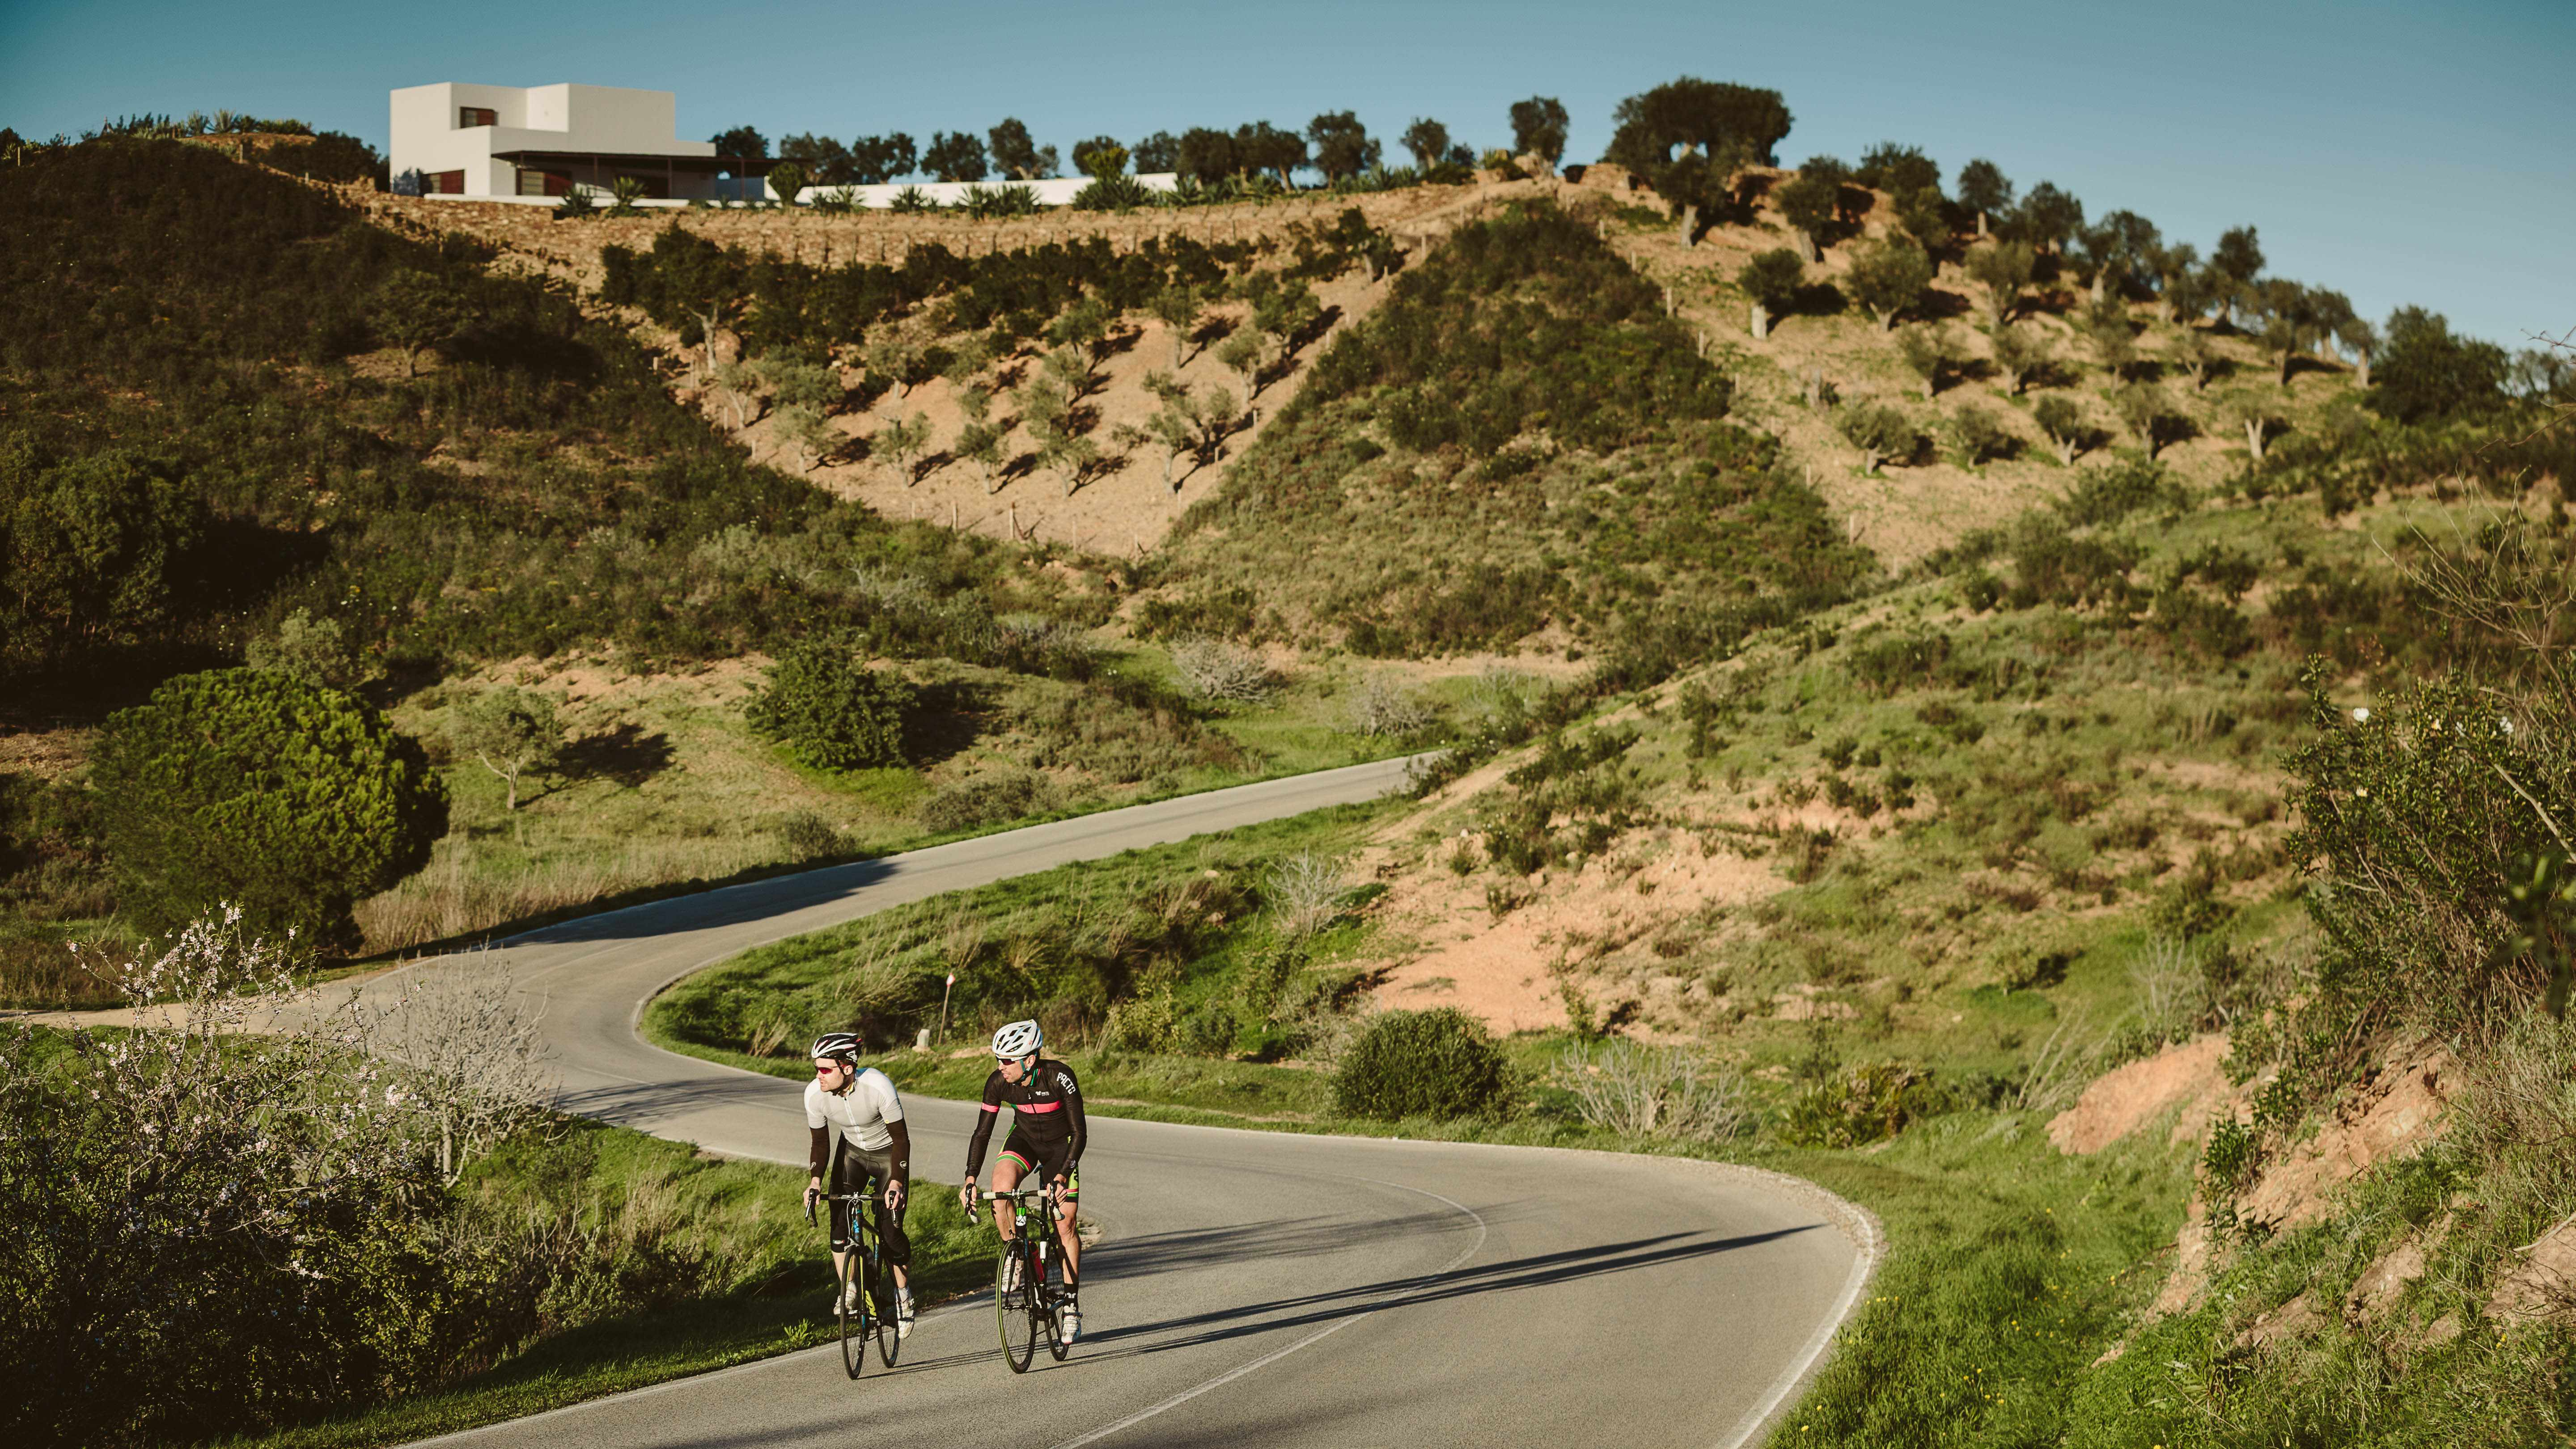 The Algarve has a beguiling blend of terrain, climate and tarmac for British cyclists